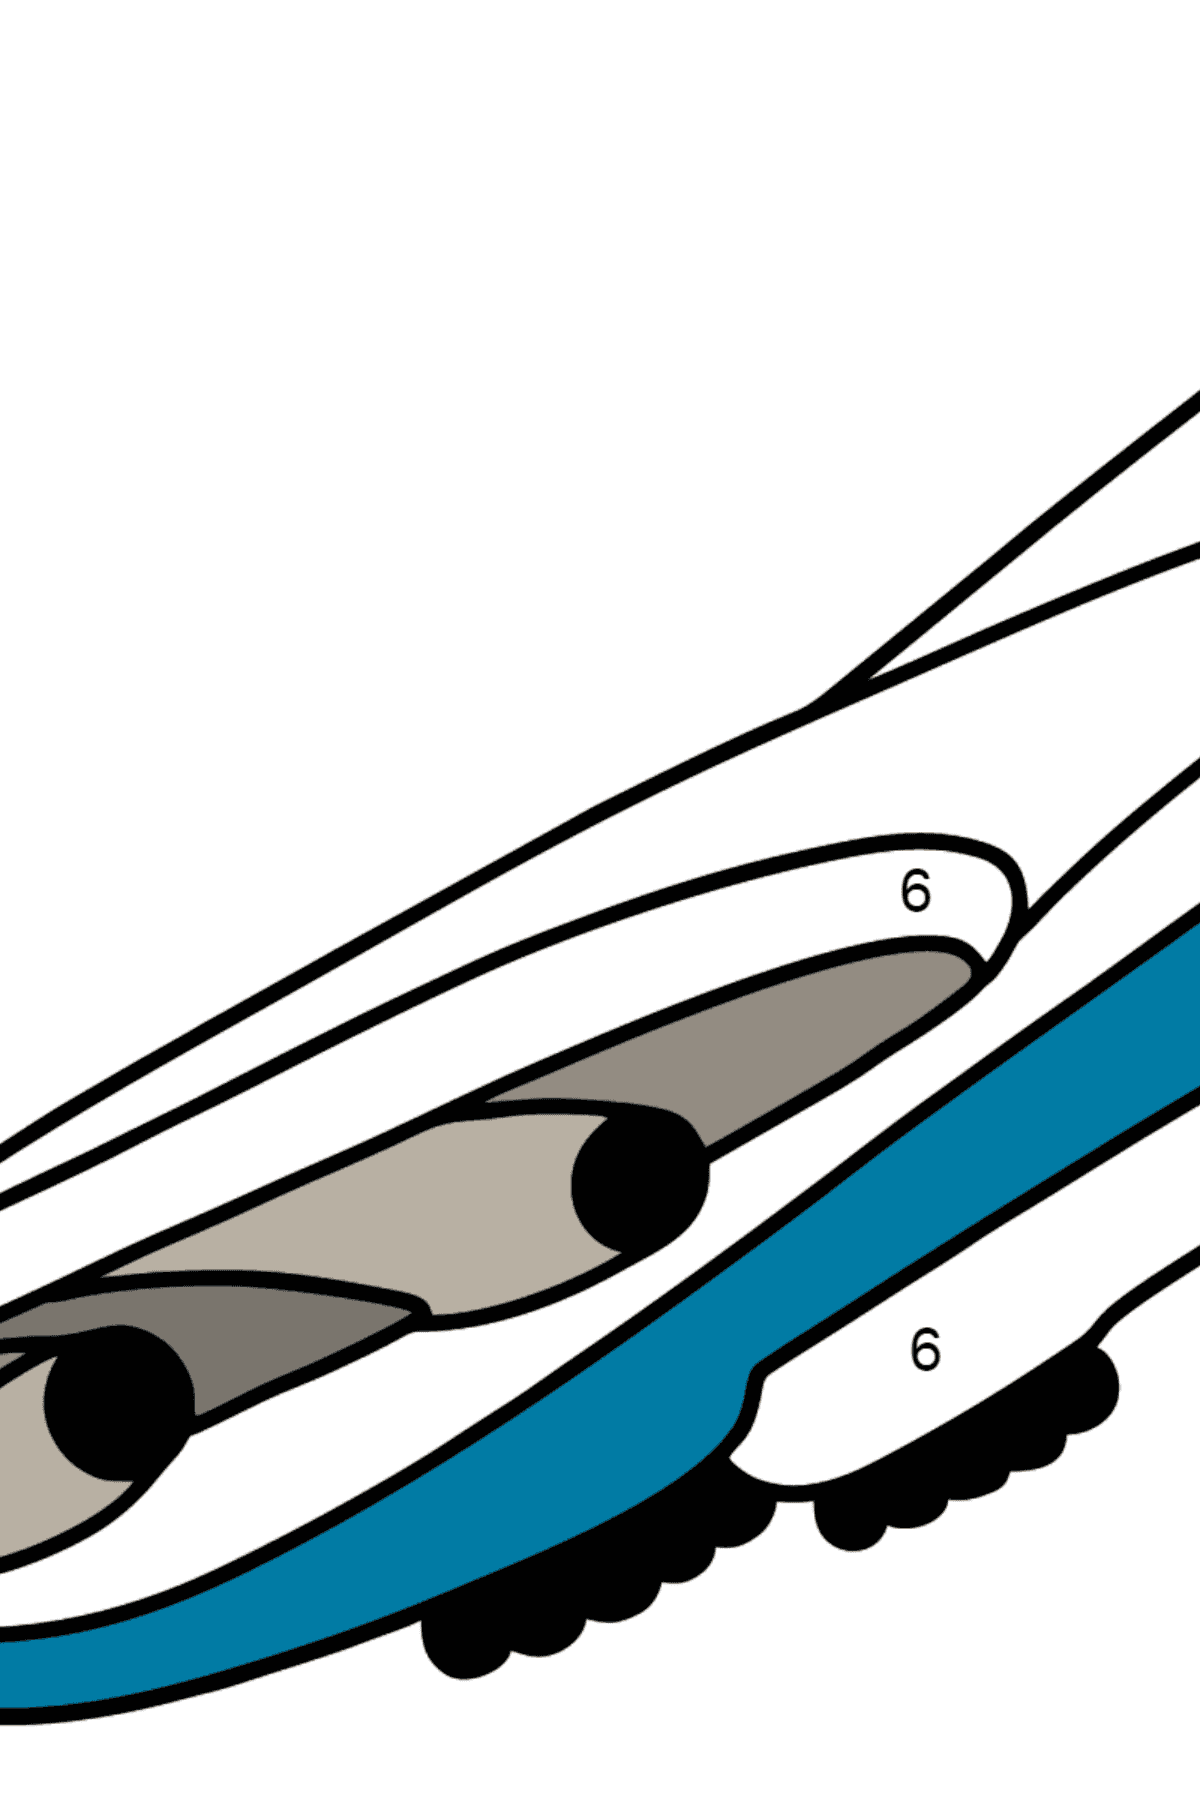 Boeing 747 coloring page - Coloring by Numbers for Kids